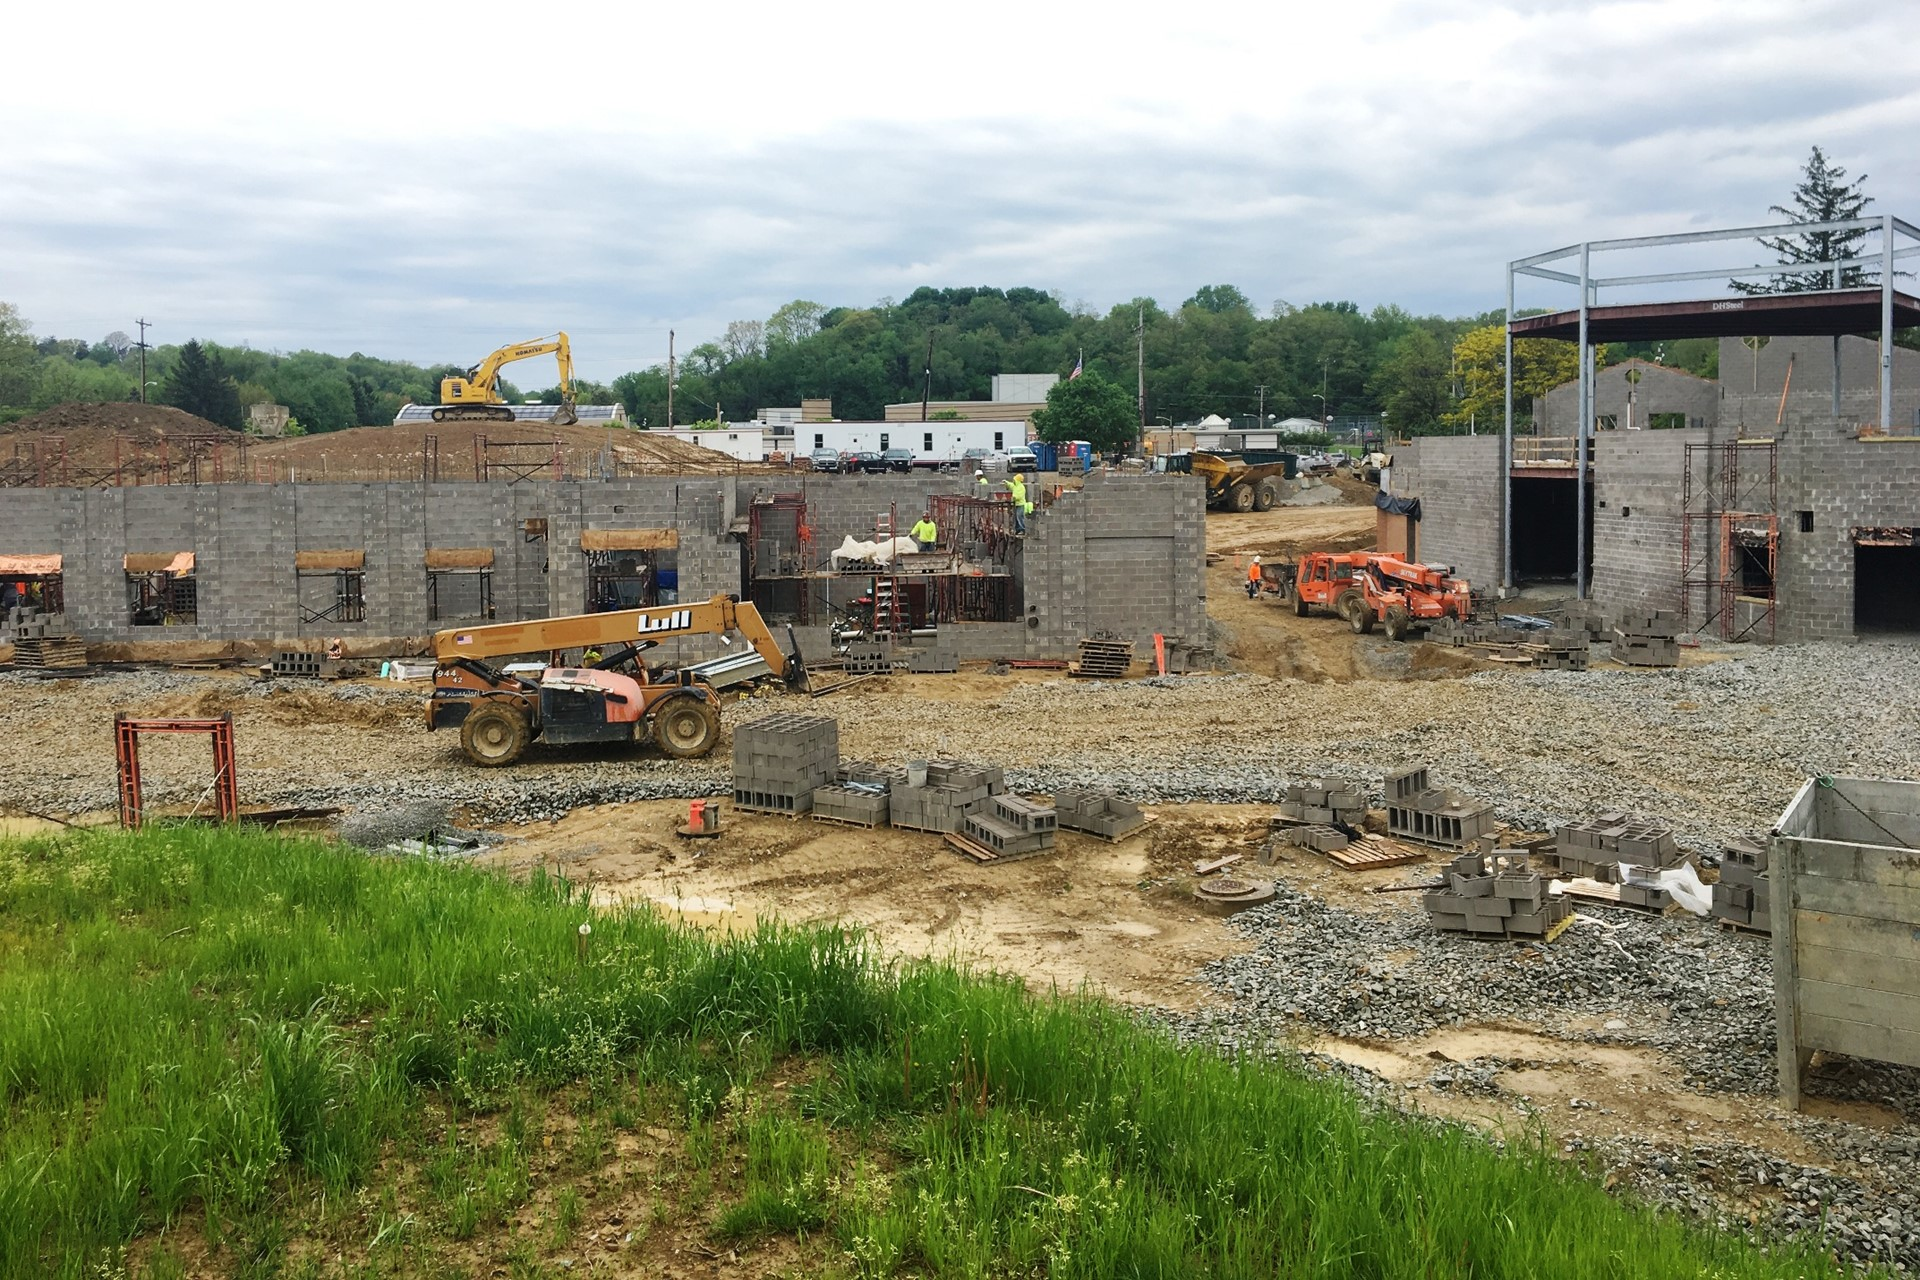 New school construction site: Site overview